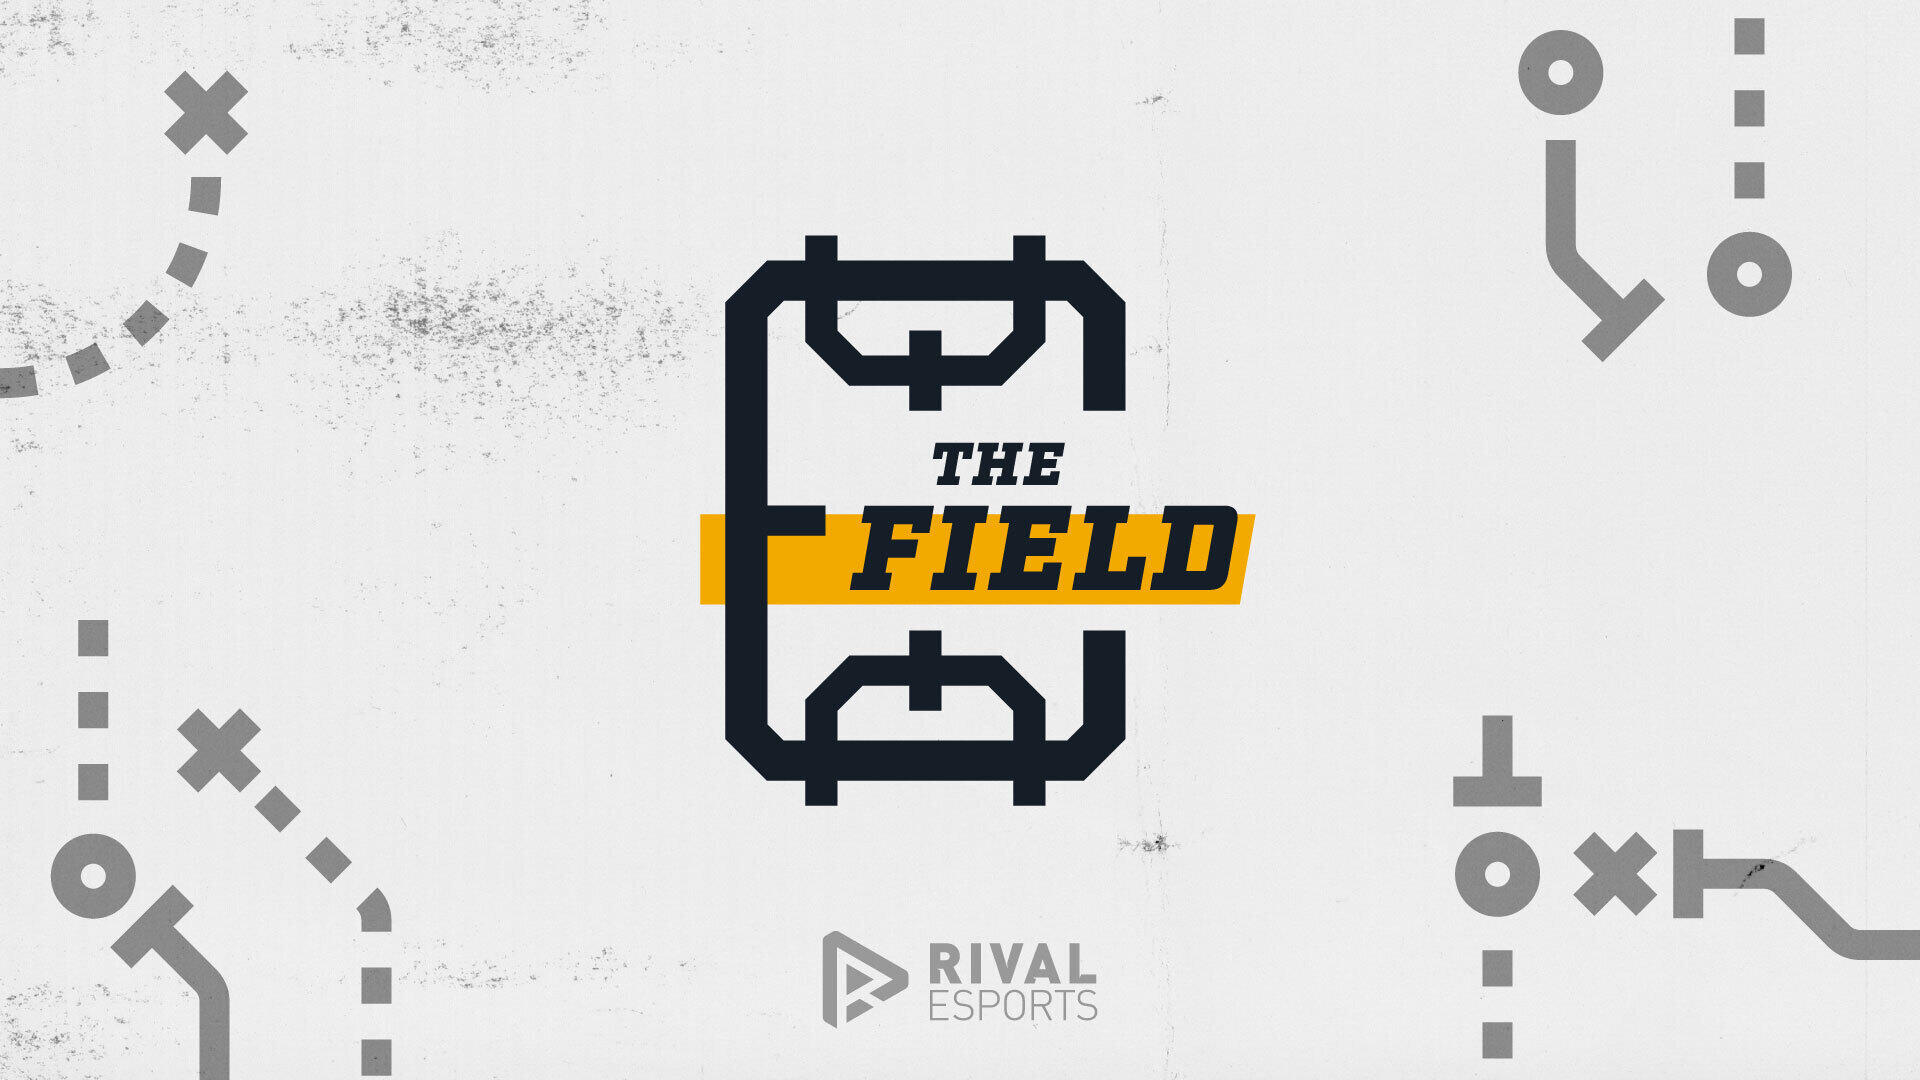 Introducing The Field! Image